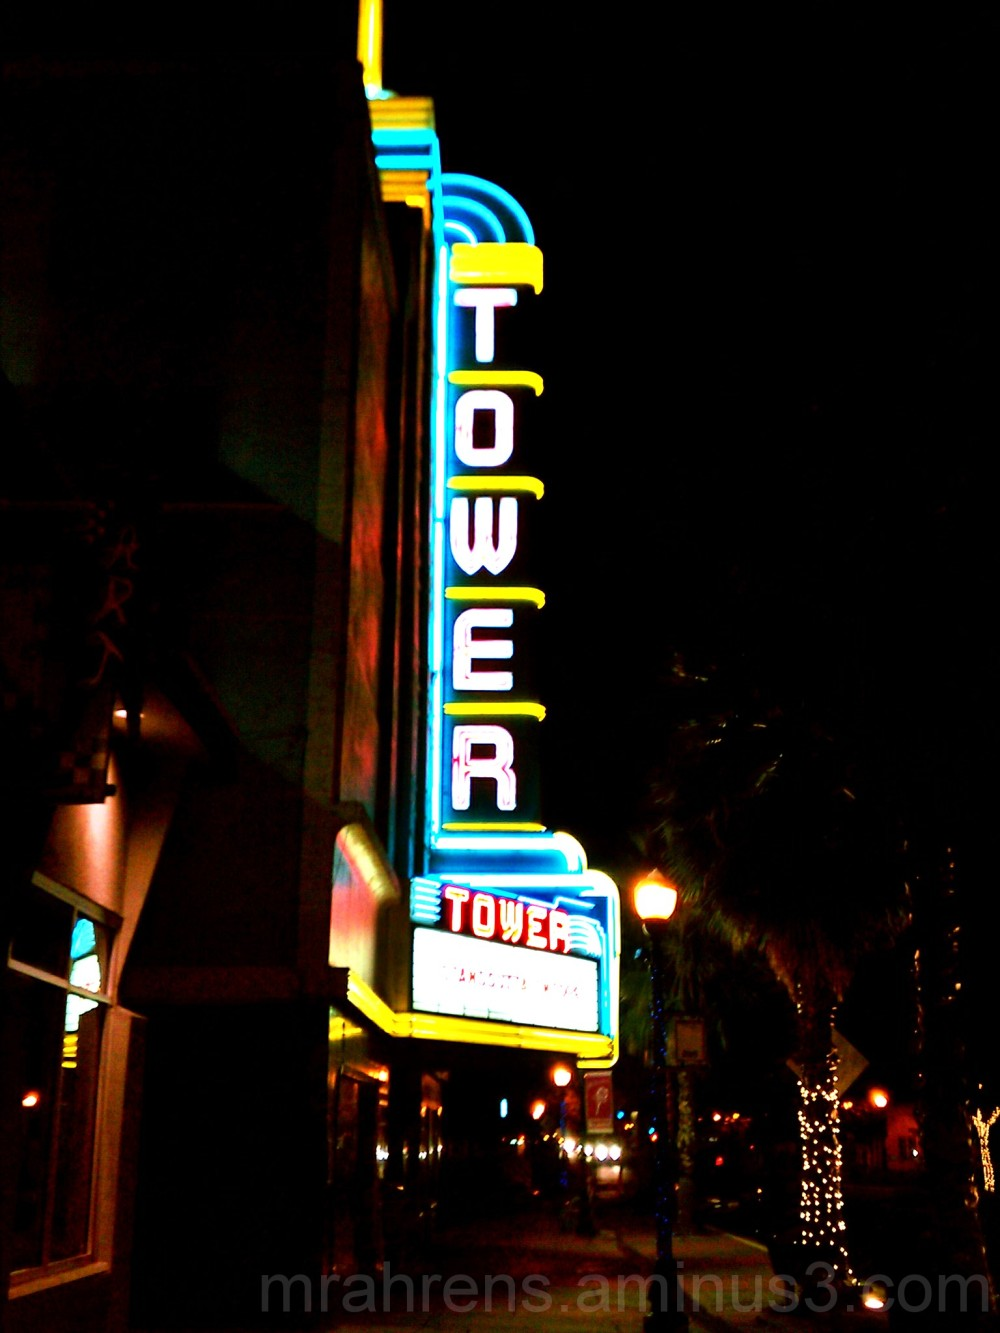 The Tower Theatre in Roseville, CA